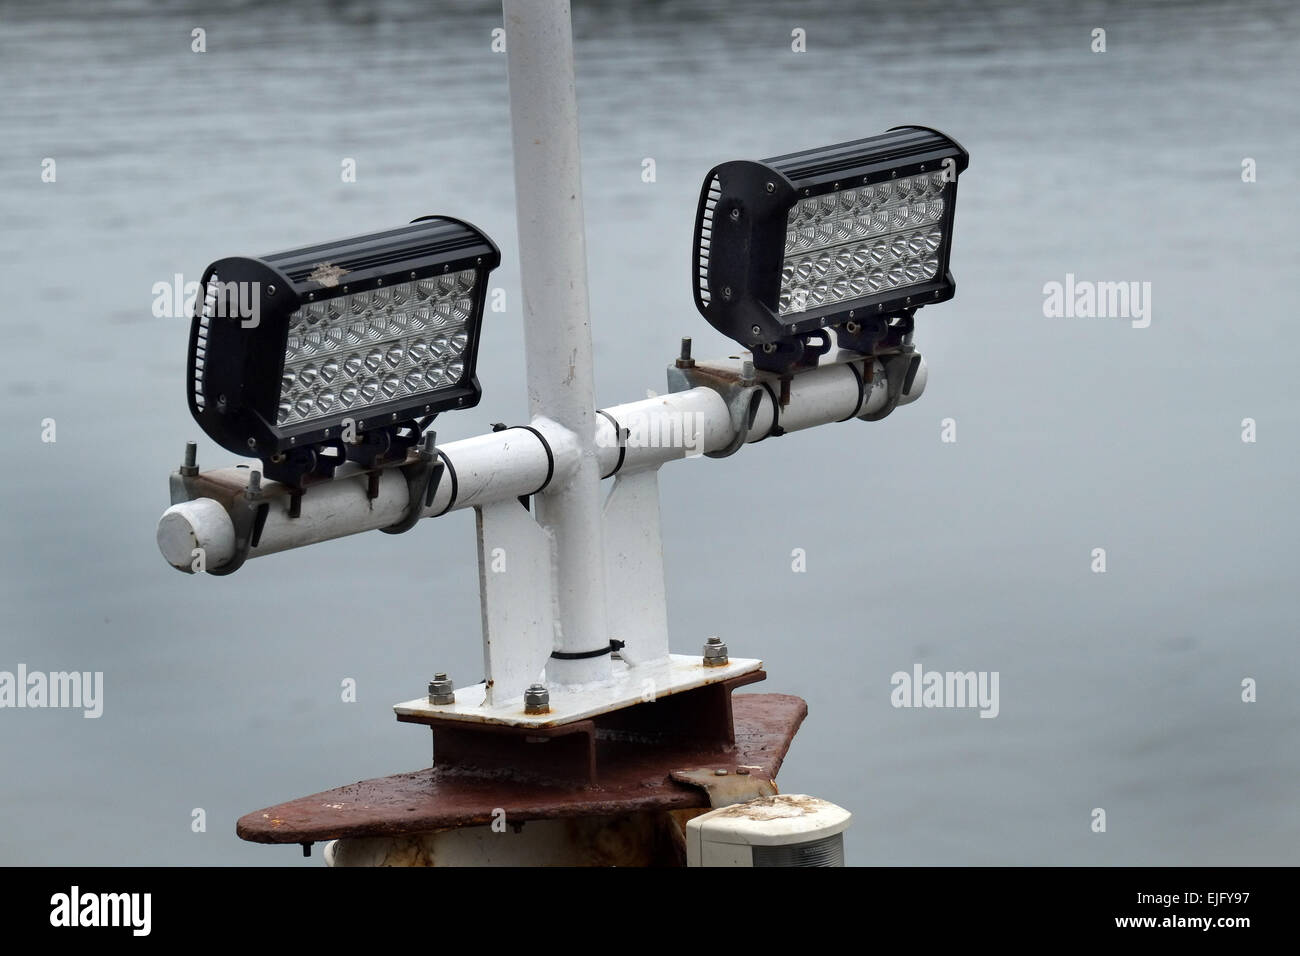 High intensity LED lights in use on ship. - Stock Image